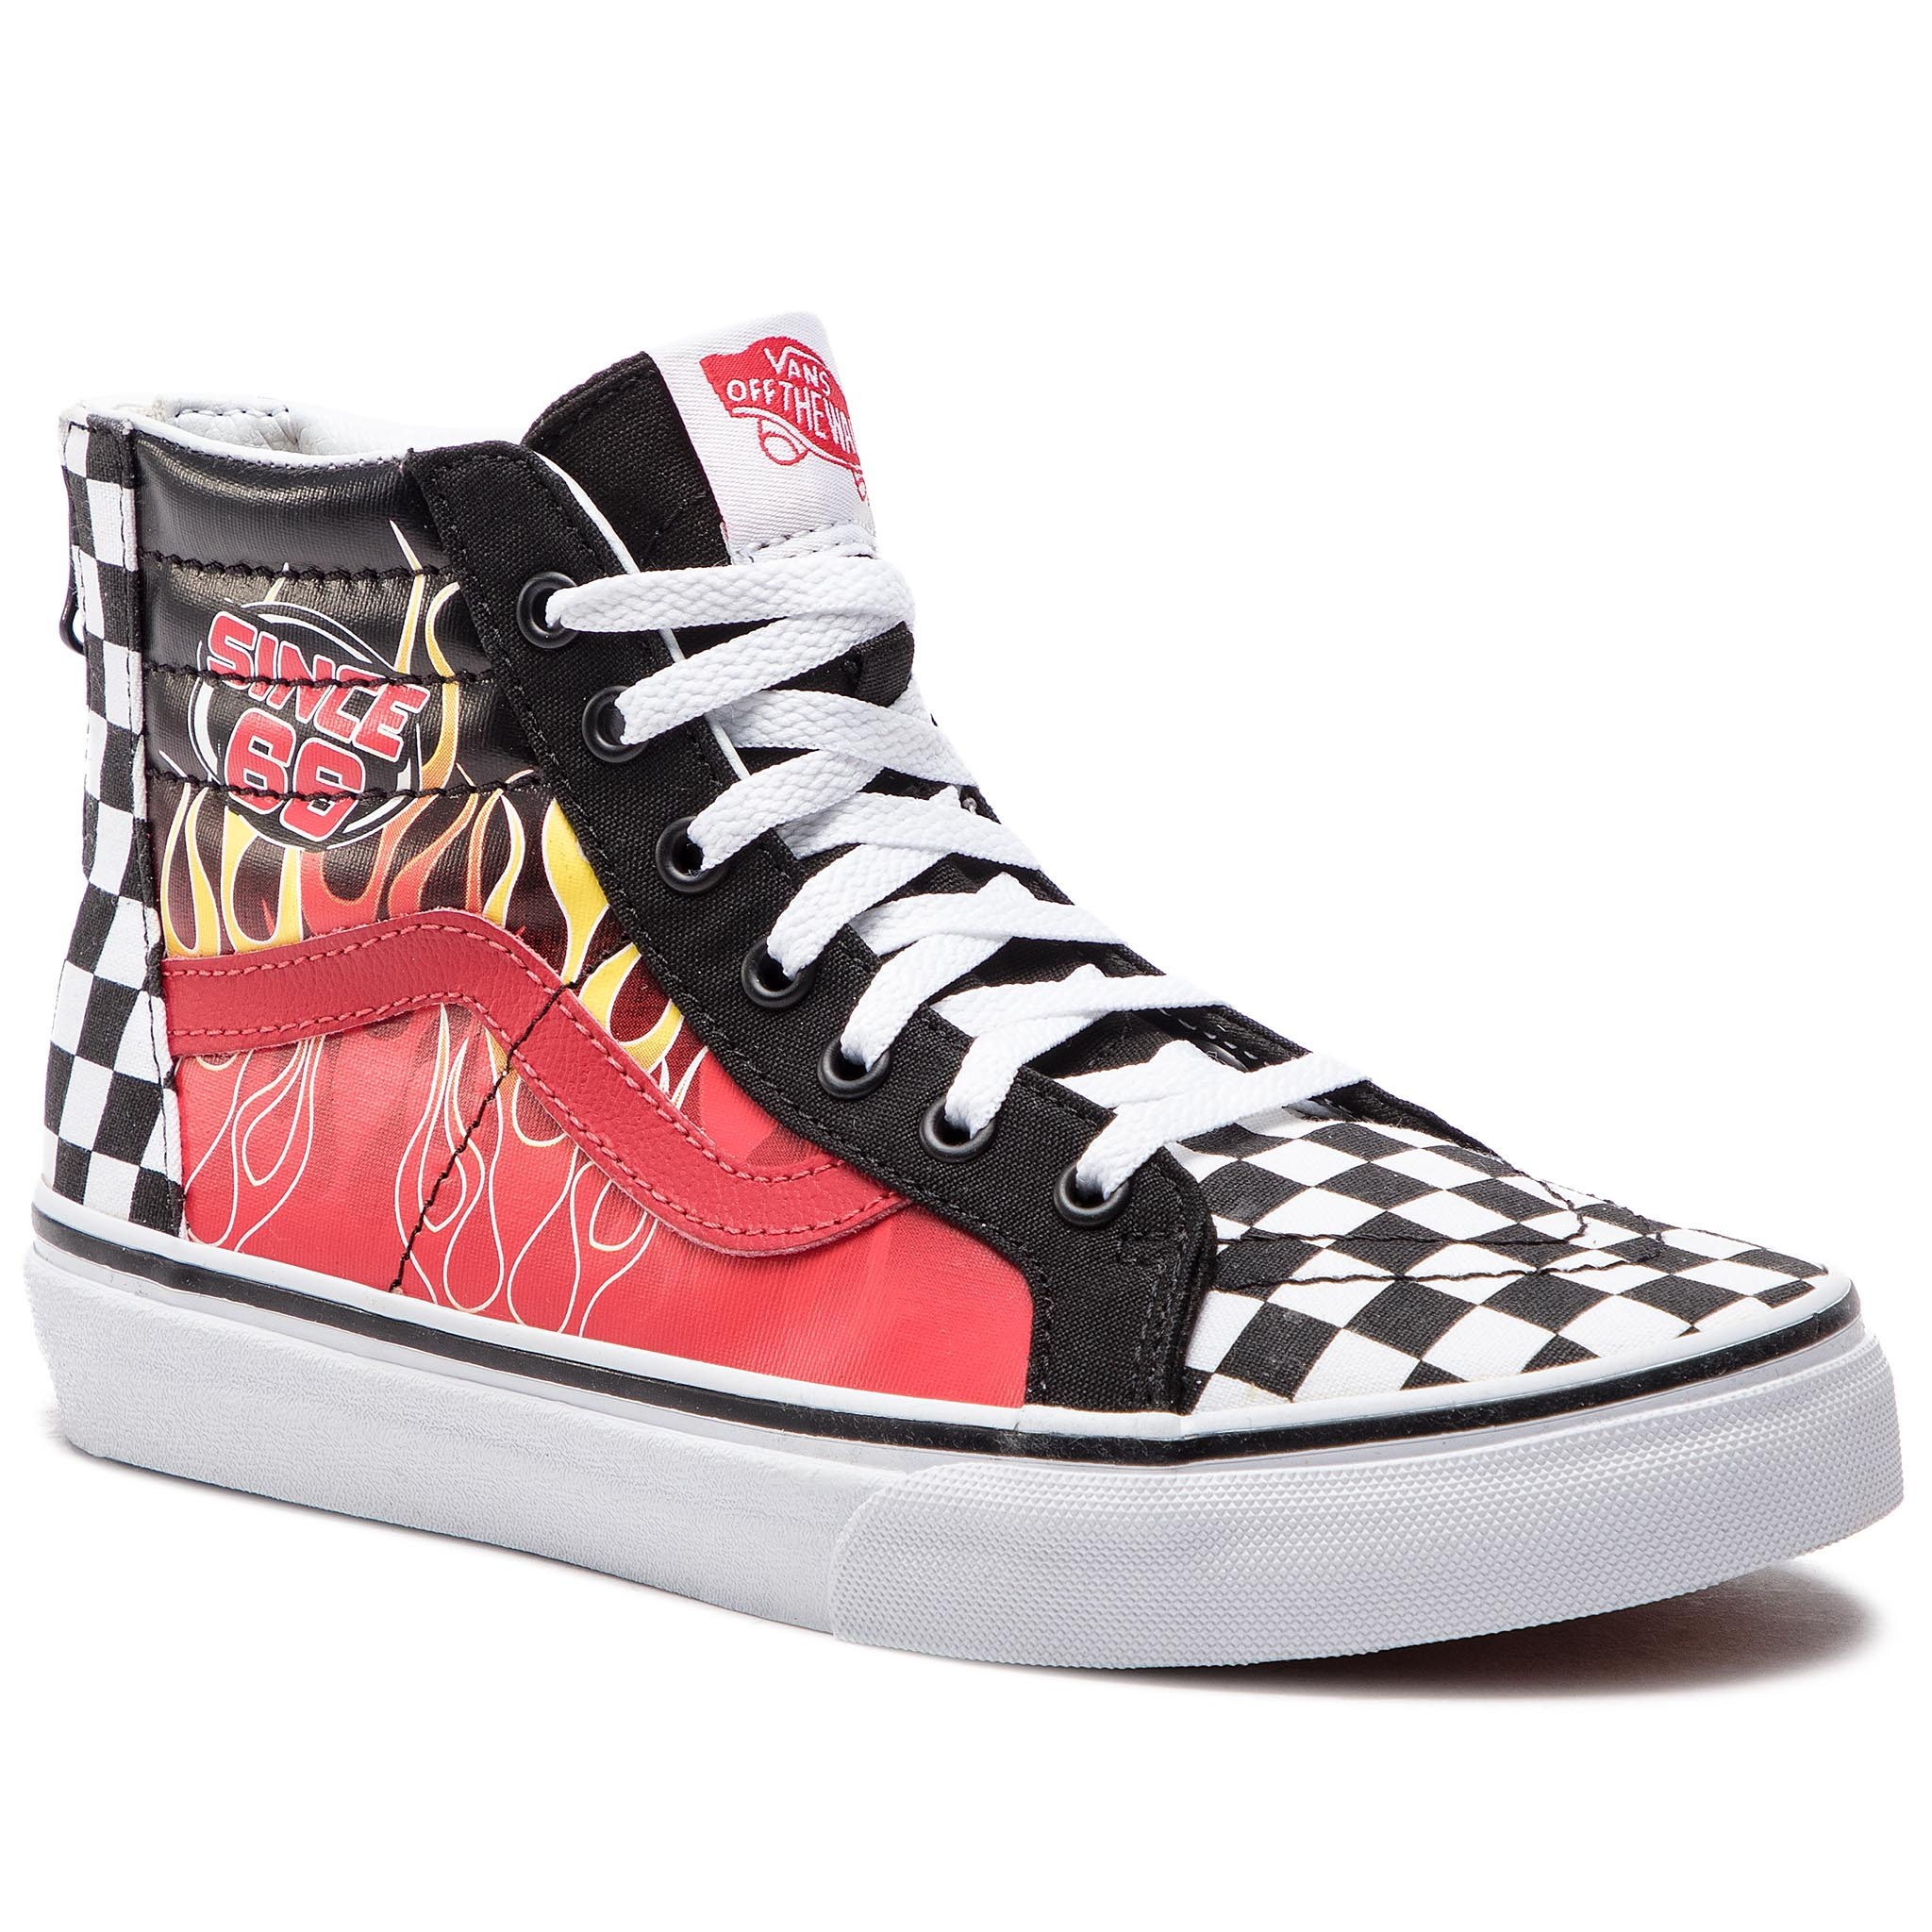 Sneakers VANS - Sk8-Hi Zip VN0A3276UJ61 (Race Flame) Black/Racing